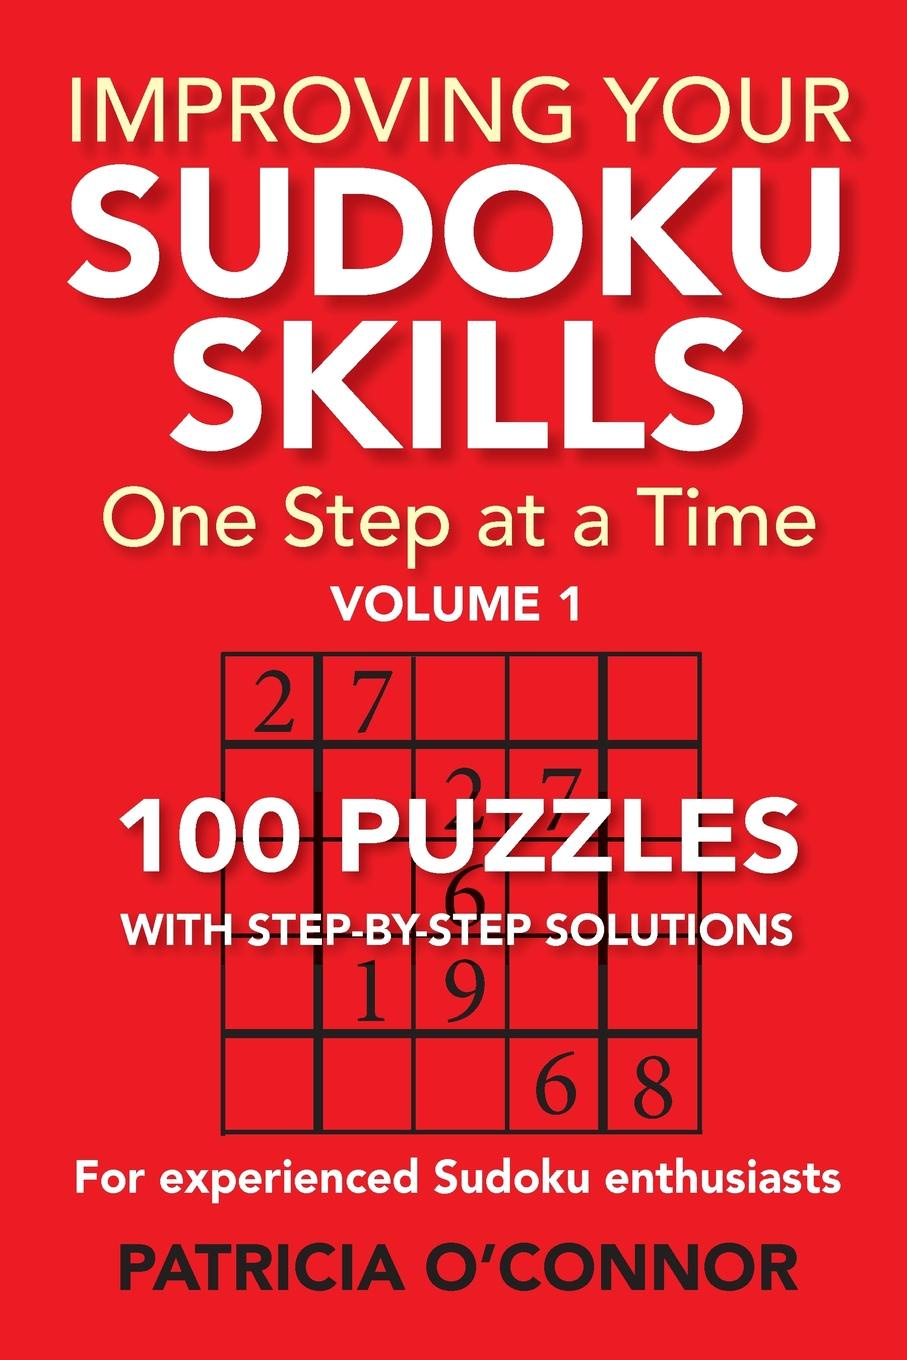 Patricia O'Connor Improving Your Sudoku Skills. One Step at a Time